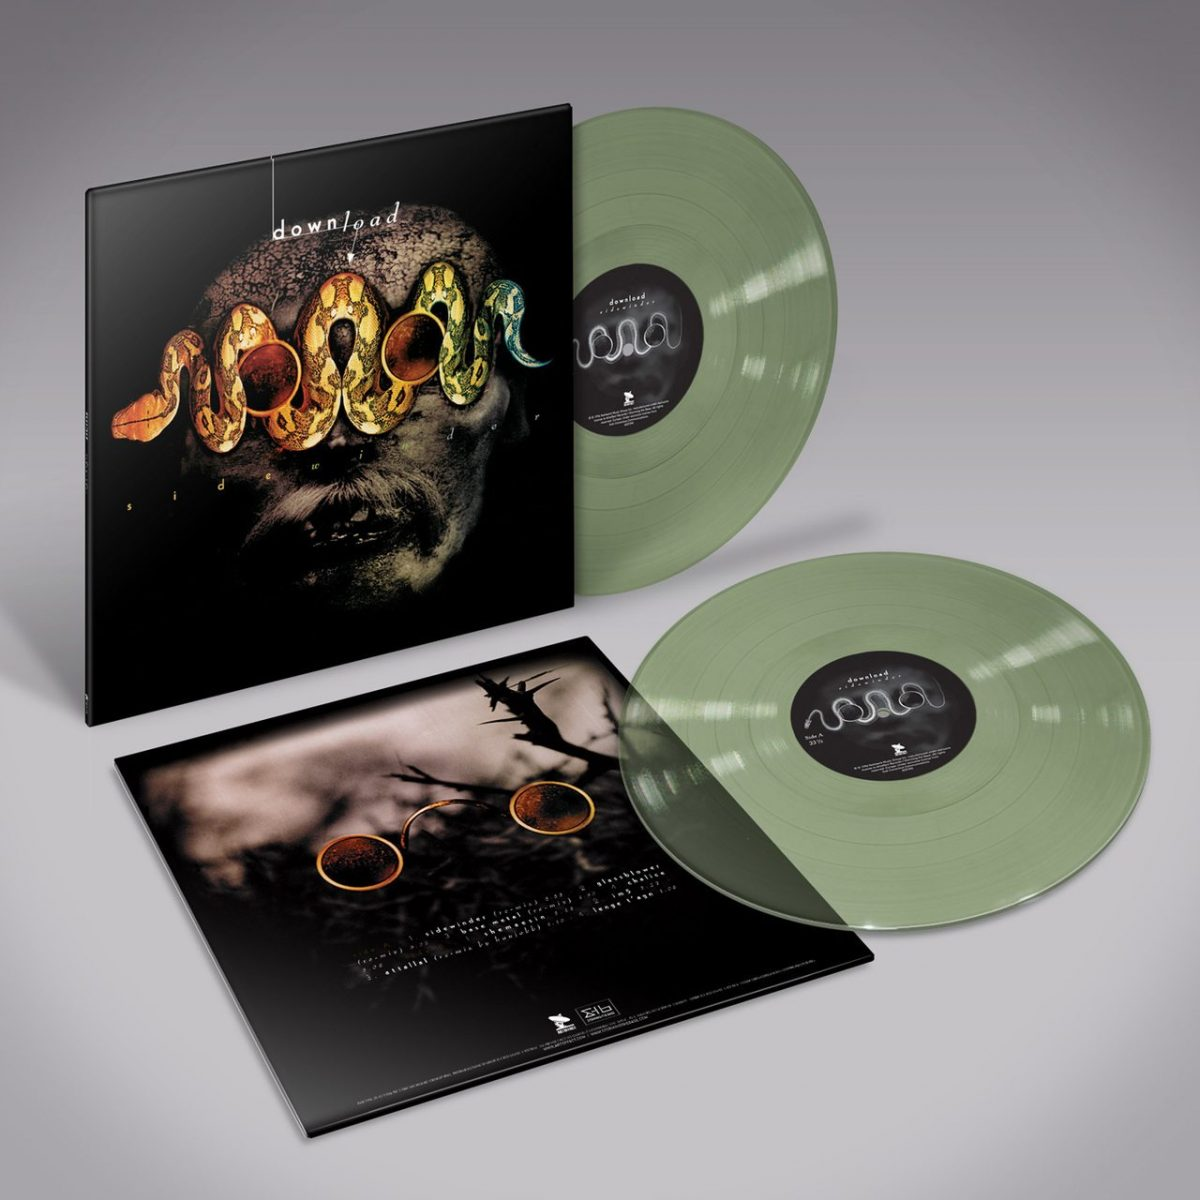 Skinny Puppy Fans Attention Massive Reissue Campaign For